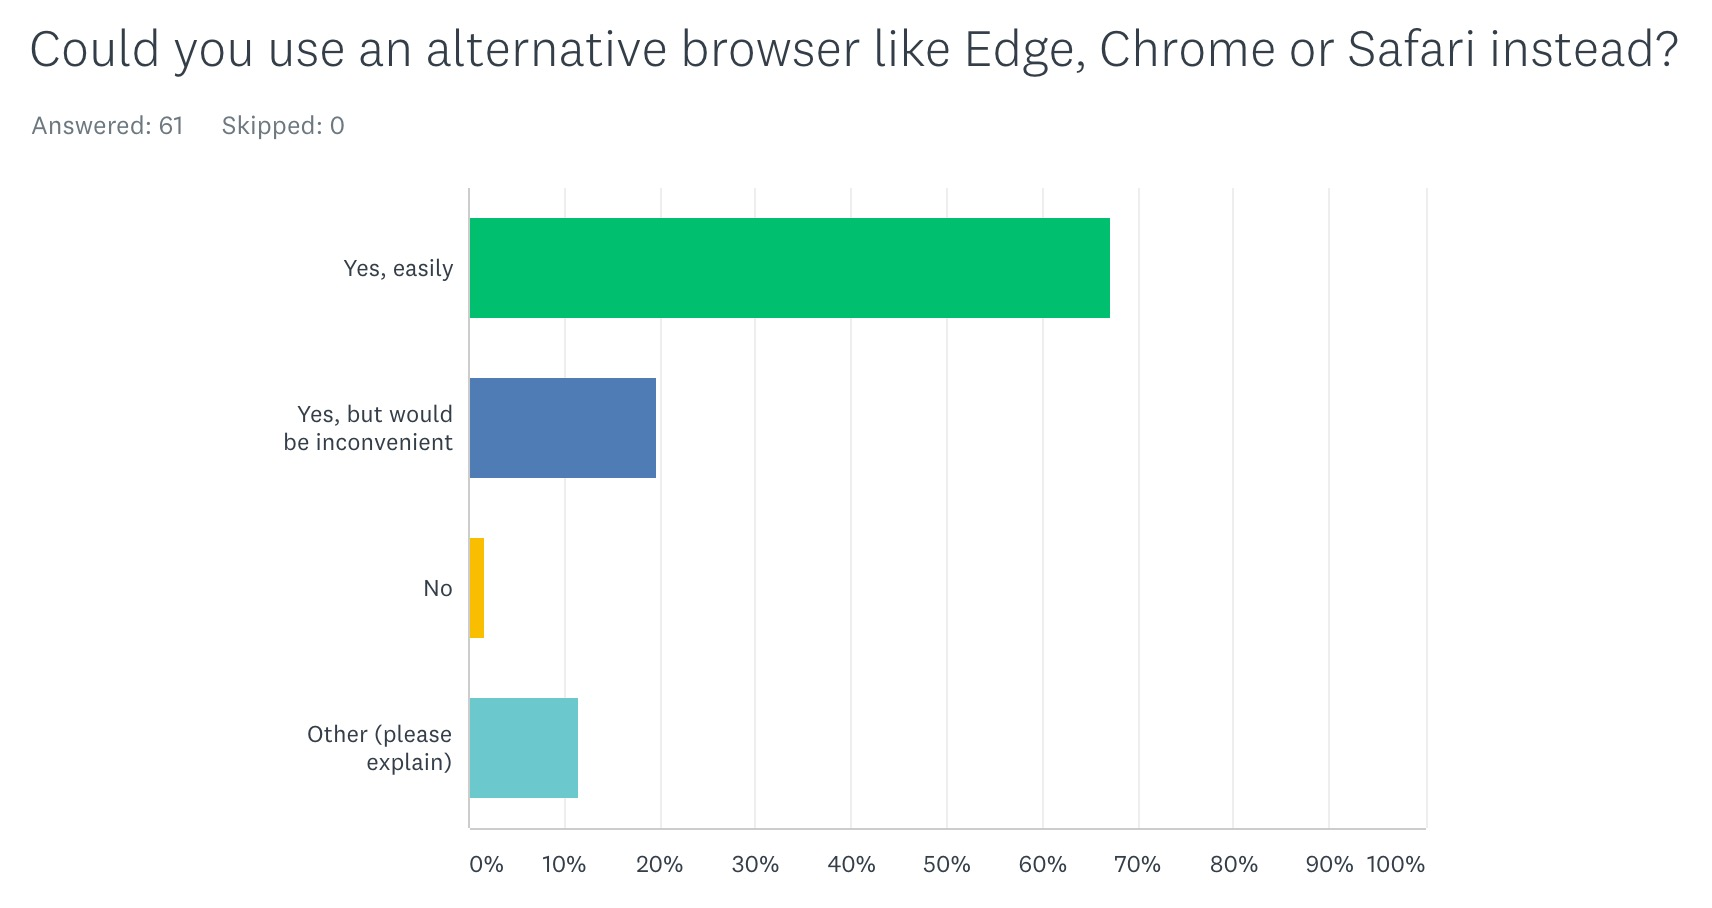 Chart - Could you use an alternative browser like Edge, Chrome or Safari instead?